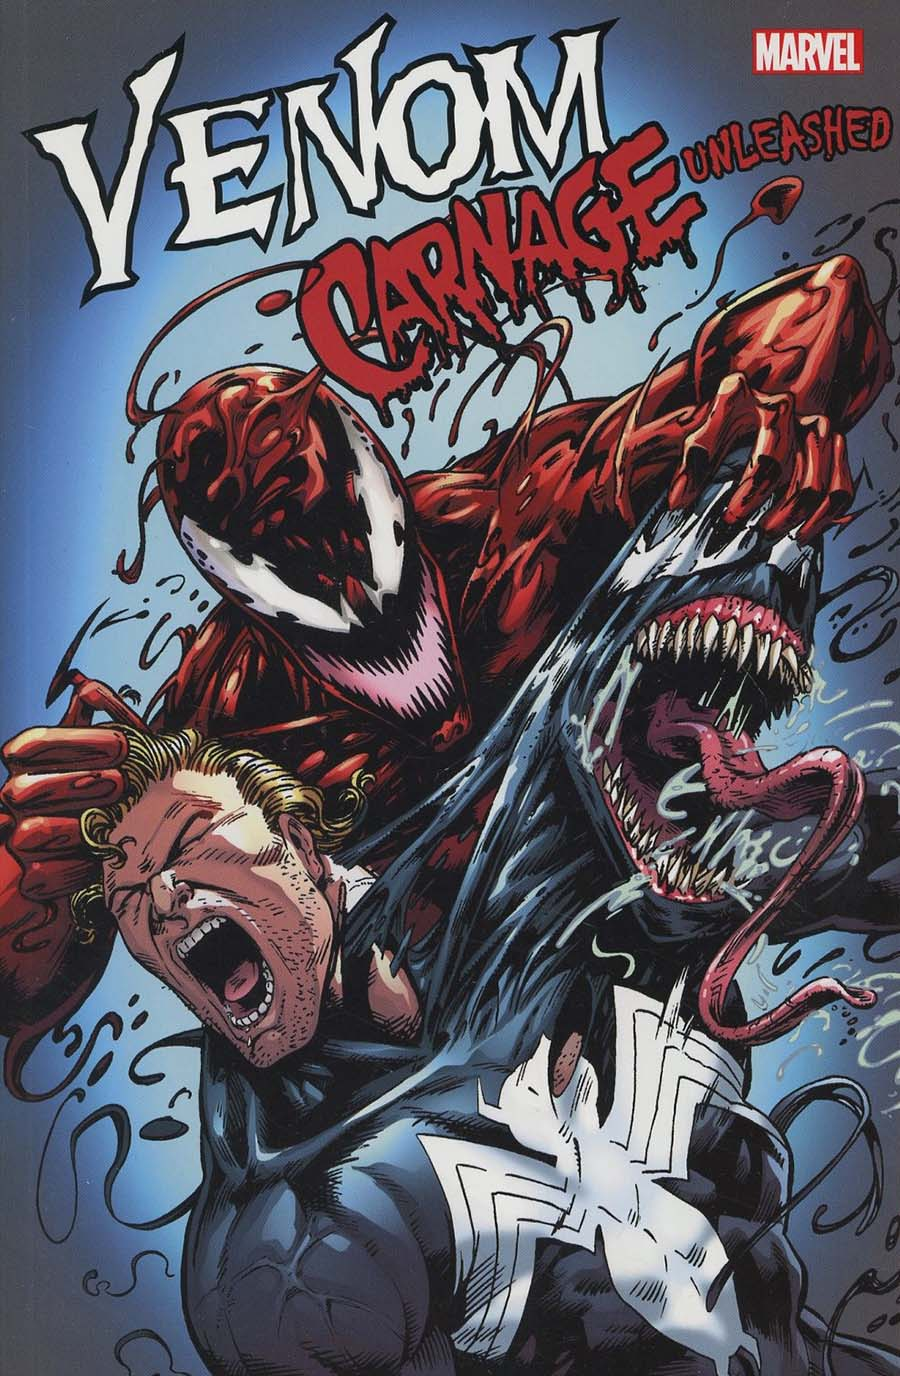 Venom Carnage Unleashed TP New Printing